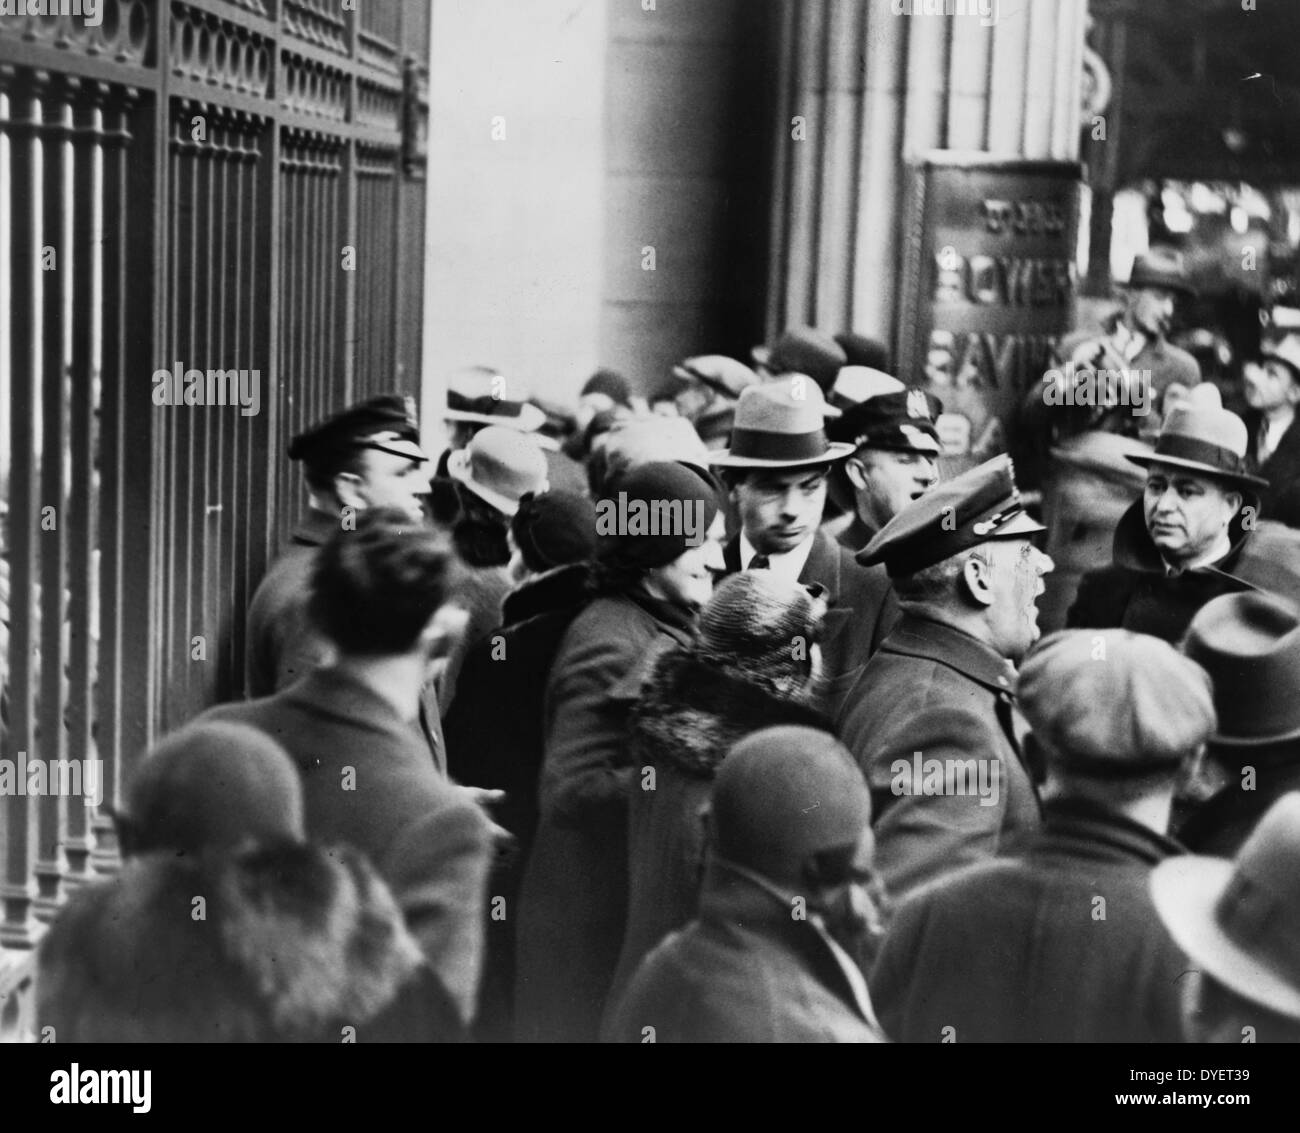 Police announce the news to depositors that the bank is closed. 19330101. - Stock Image